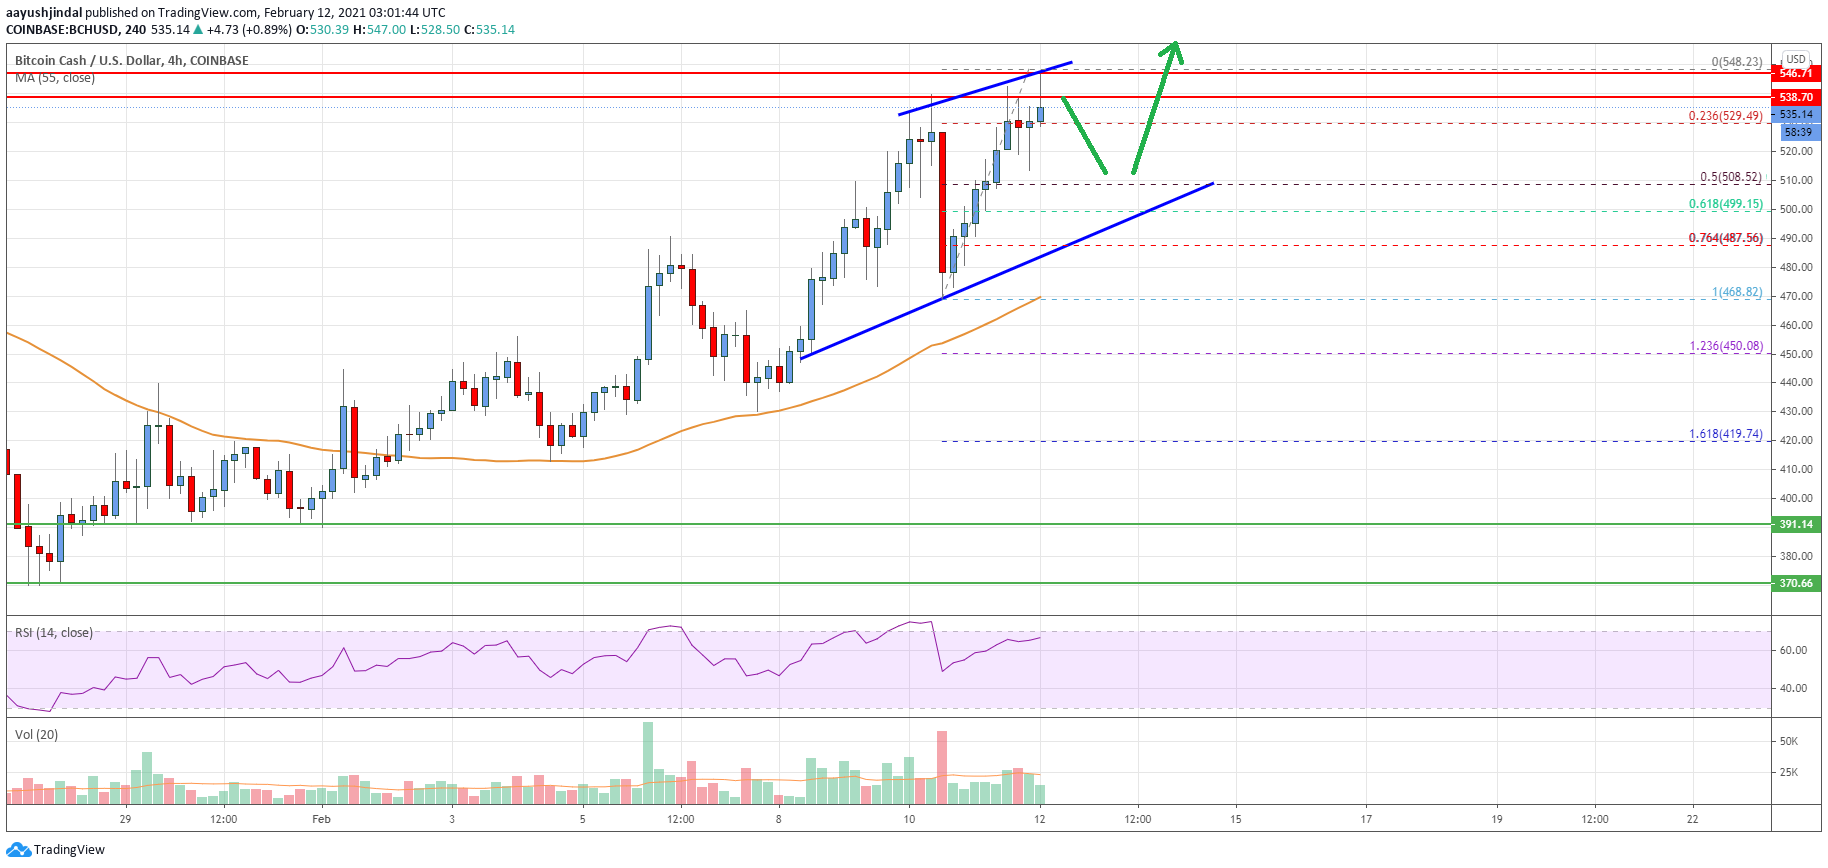 Bitcoin Cash Analysis: More Upsides Likely Above $550